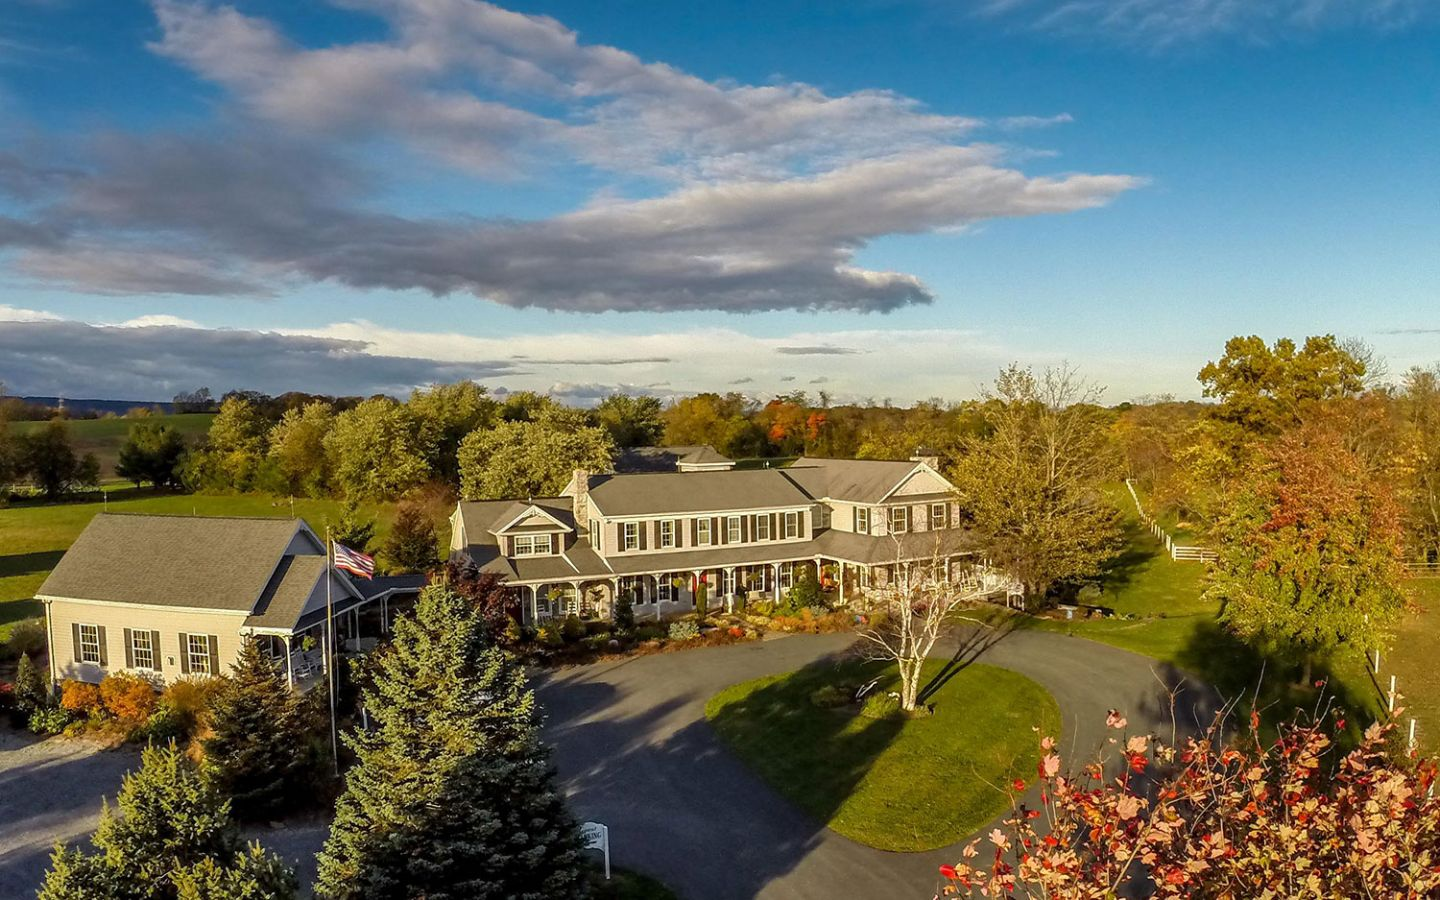 Aerial View of Our Hershey PA B&B in the Fall